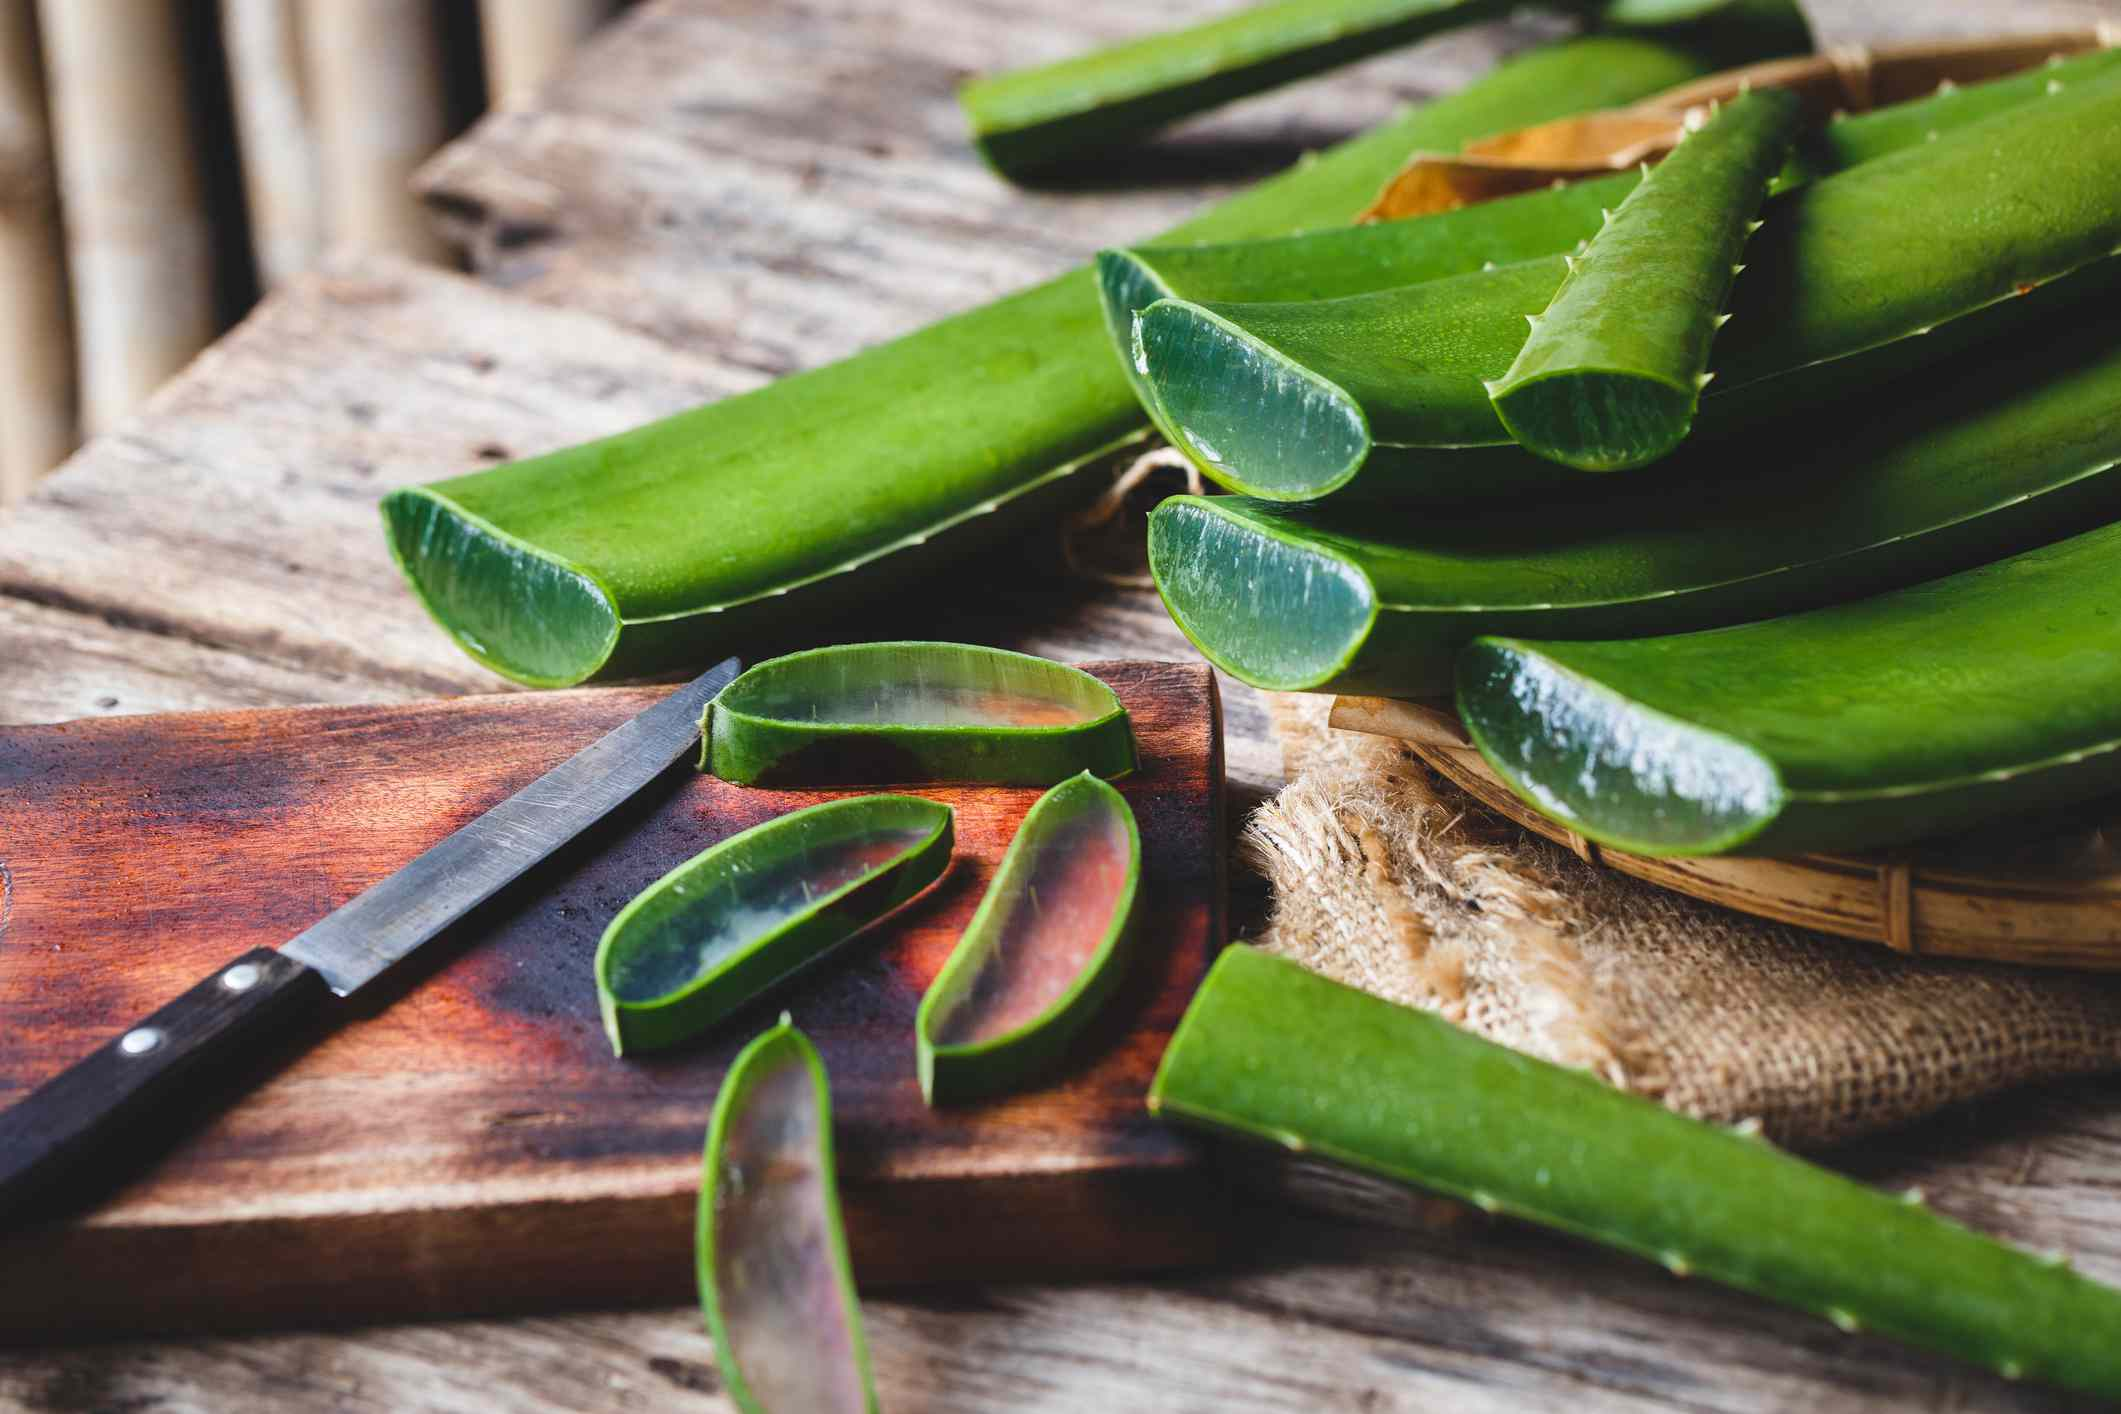 aloe vera being cut open for medicinal use